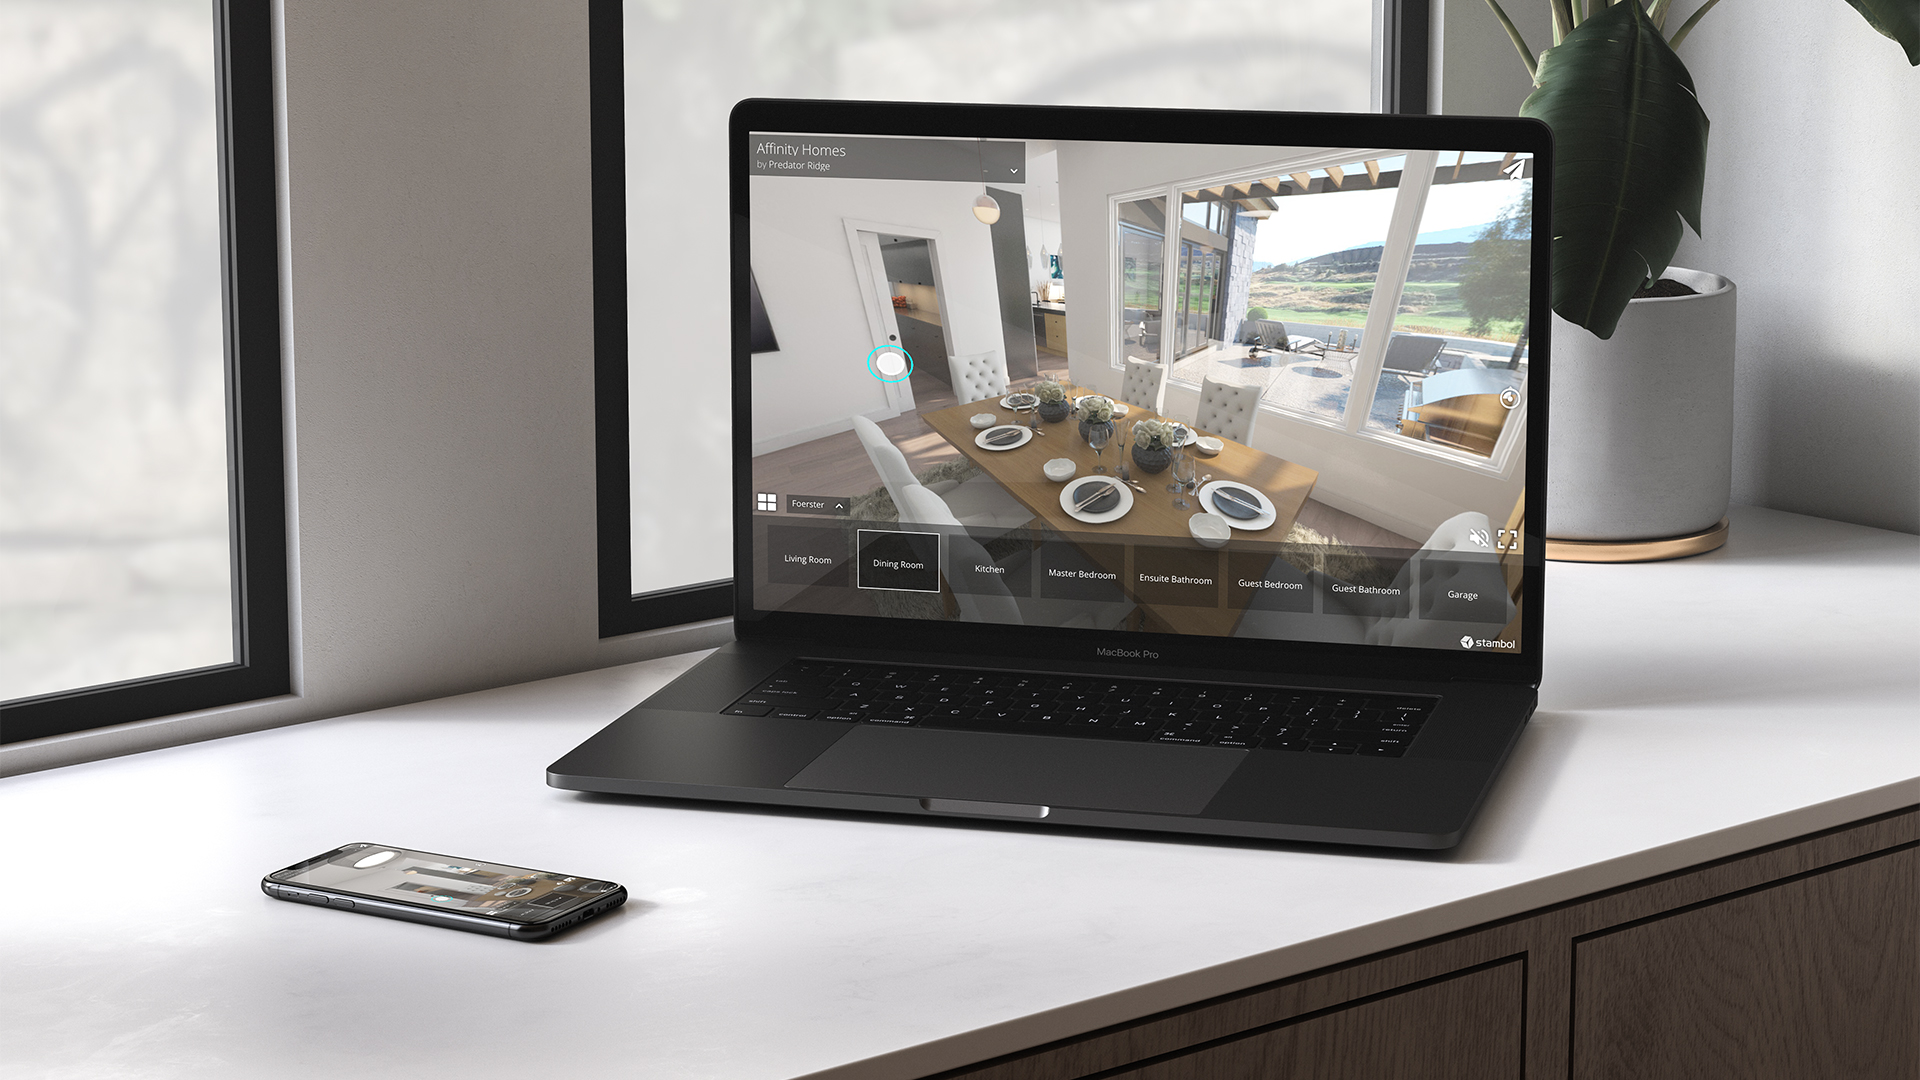 Wesbuild's Affinity Homes VR Walkthrough Experience on Laptop